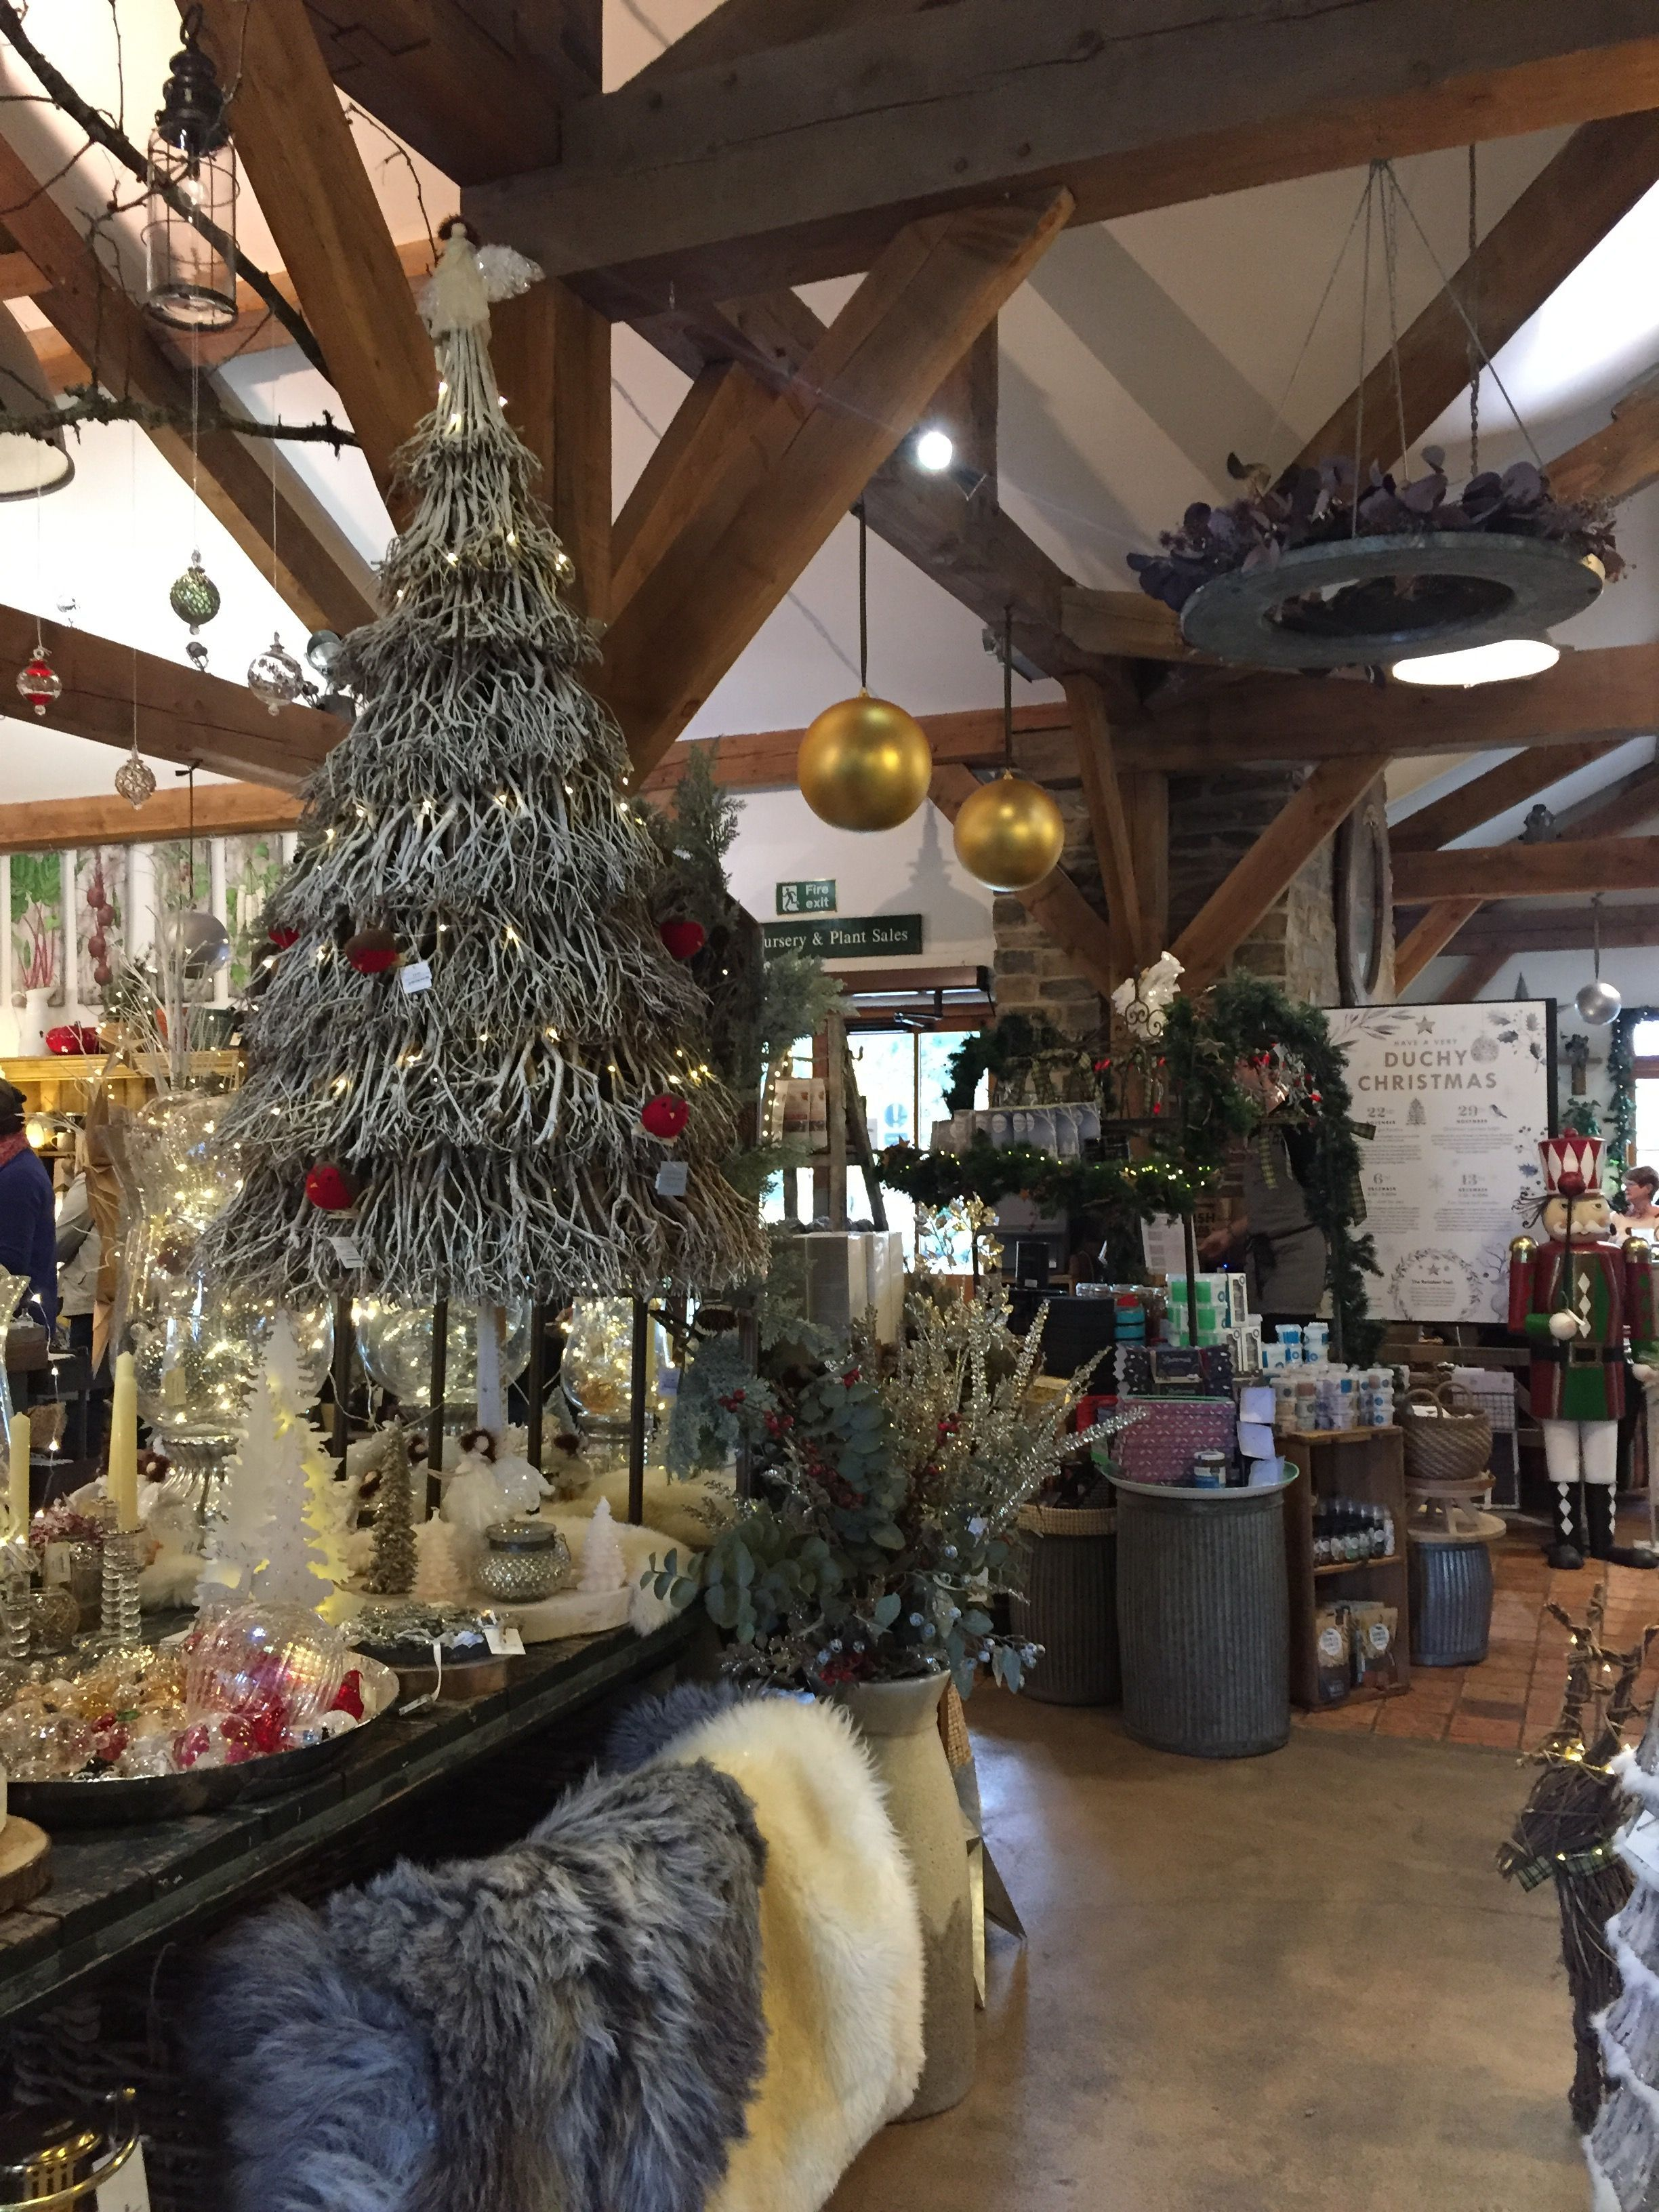 Popped to the local garden centre & it has made us feel so festive 🎅🏽 #feelingfestive #christmasiscoming #christmascountdown